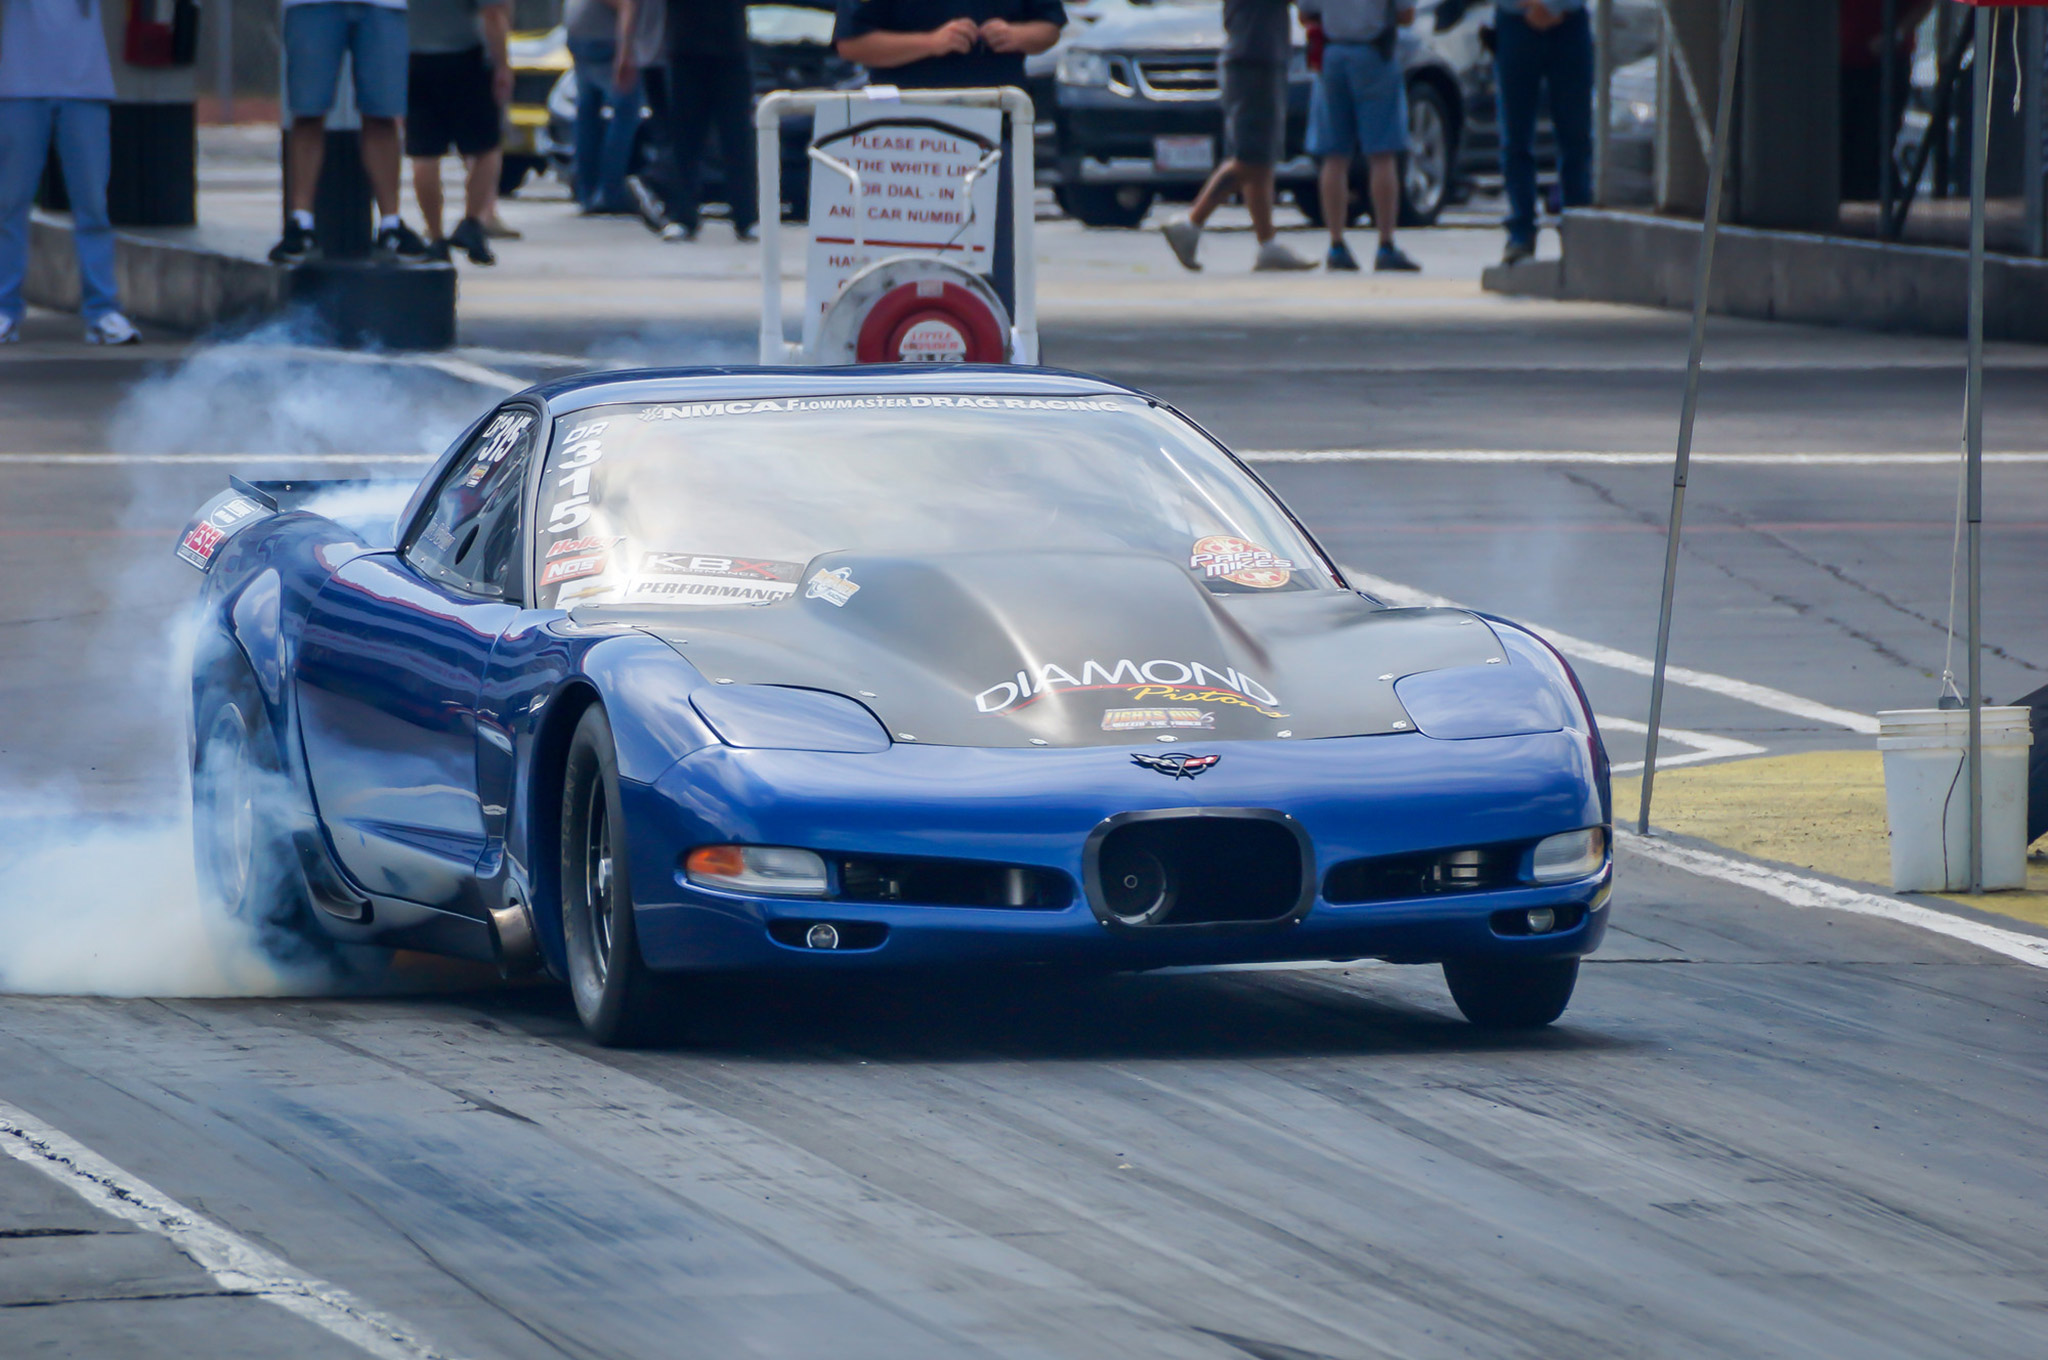 Joe DeDona posted a 4.91 at 152 mph to take the top-qualifier spot in Drag Radial with his 2002 Corvette. He had the field covered with that run by a wide margin, and the C5 ZO6 had clocked a 4.61 earlier in the year. Teaming up with Tire Craft Racing, the Staten Island, New Yorker runs a 427ci solid RHS LS small-block with a new F1X-12R ProCharger under the hood, and utilizes an RPM Transmissions Turbo 400 and one of the company's IRS 9-inch setups. As DeDona and crew were warming up the car in their pit prior to their first-round bye run, one of the cylinder heads dropped a valve. It didn't cause too much damage, but it did put an end to DeDona's full-throttle exploits this weekend. DeDona will finish out the Challenge series this year with the current combination, and next year's 441ci billet block with Mast Mozez heads is already in the works.